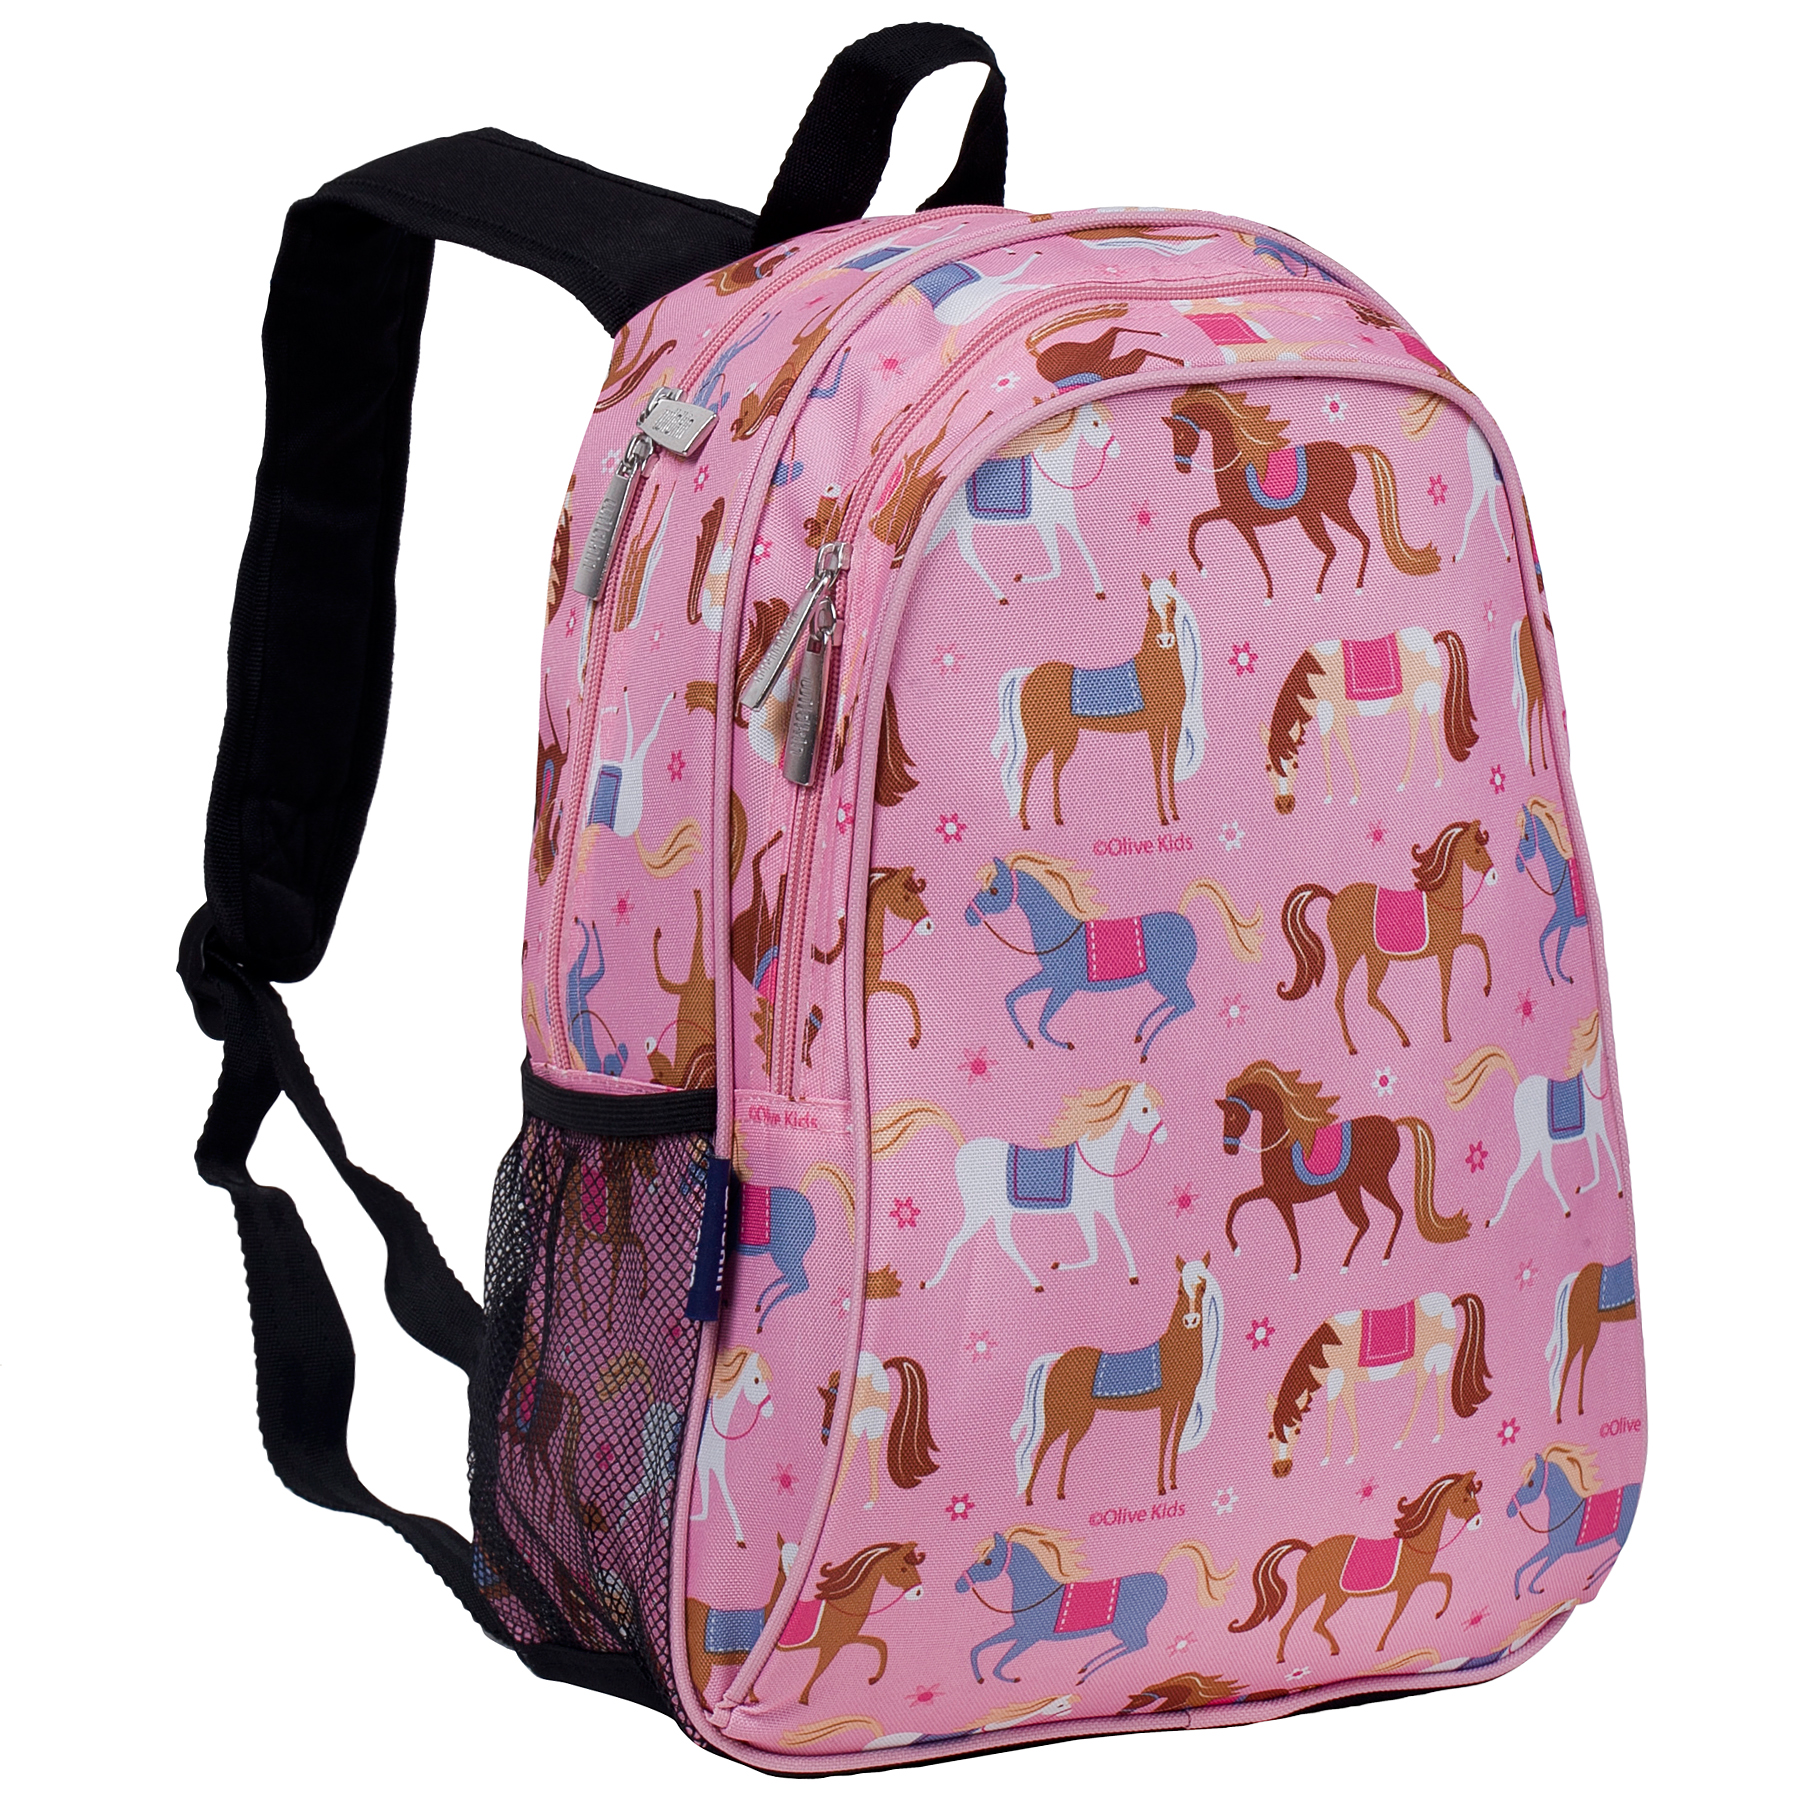 Olive Kids Horses 15 Inch Specialty Backpack by Wildkin